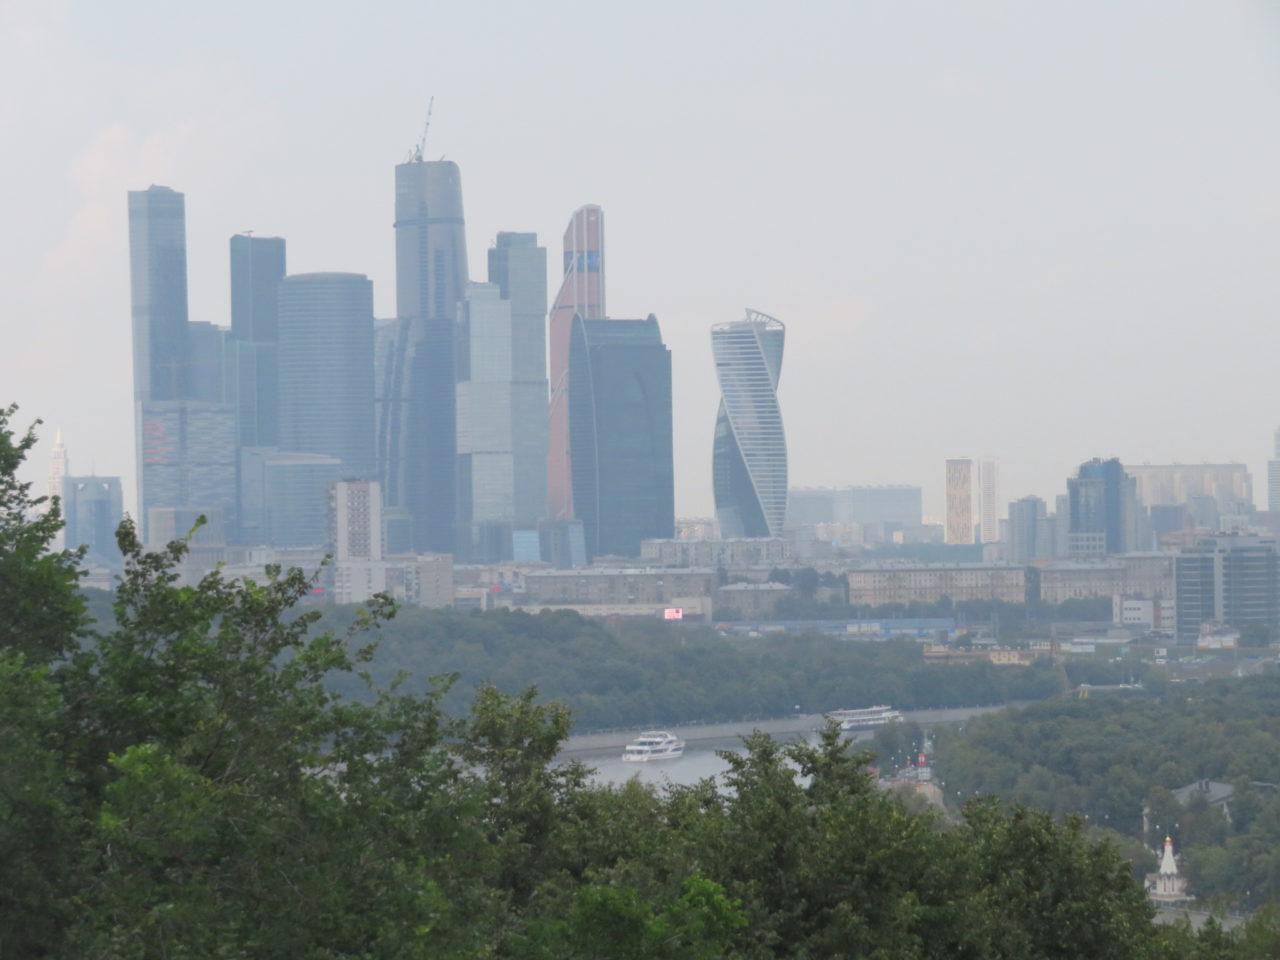 Moscow: Now a World-Class Destination ~ The skyline of the new Moscow